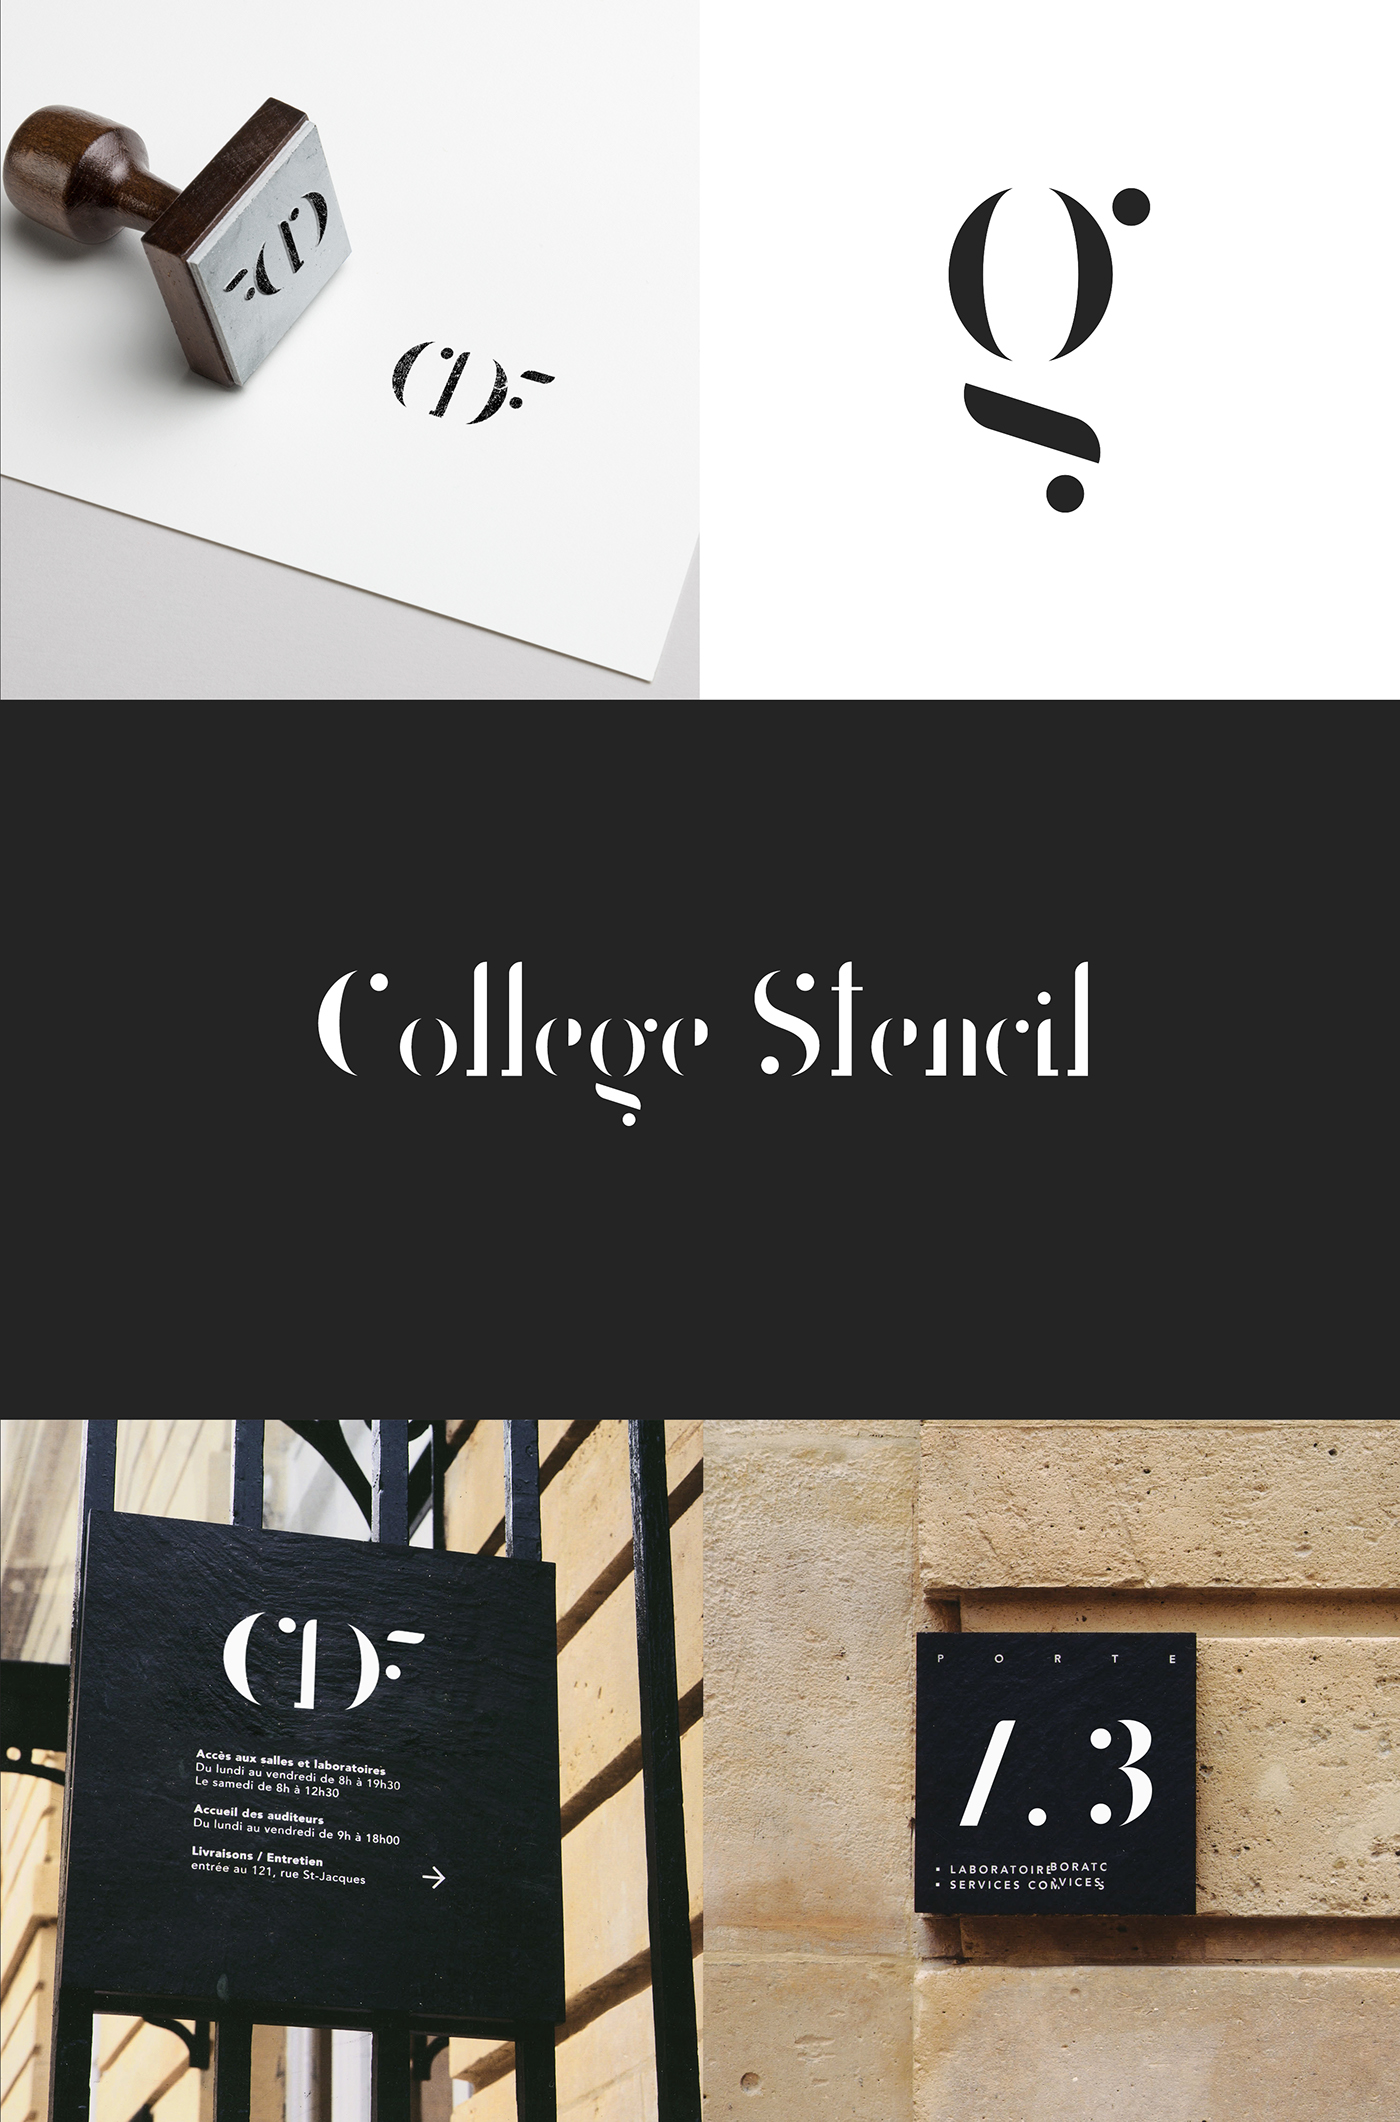 College Stencil Font - Befonts com